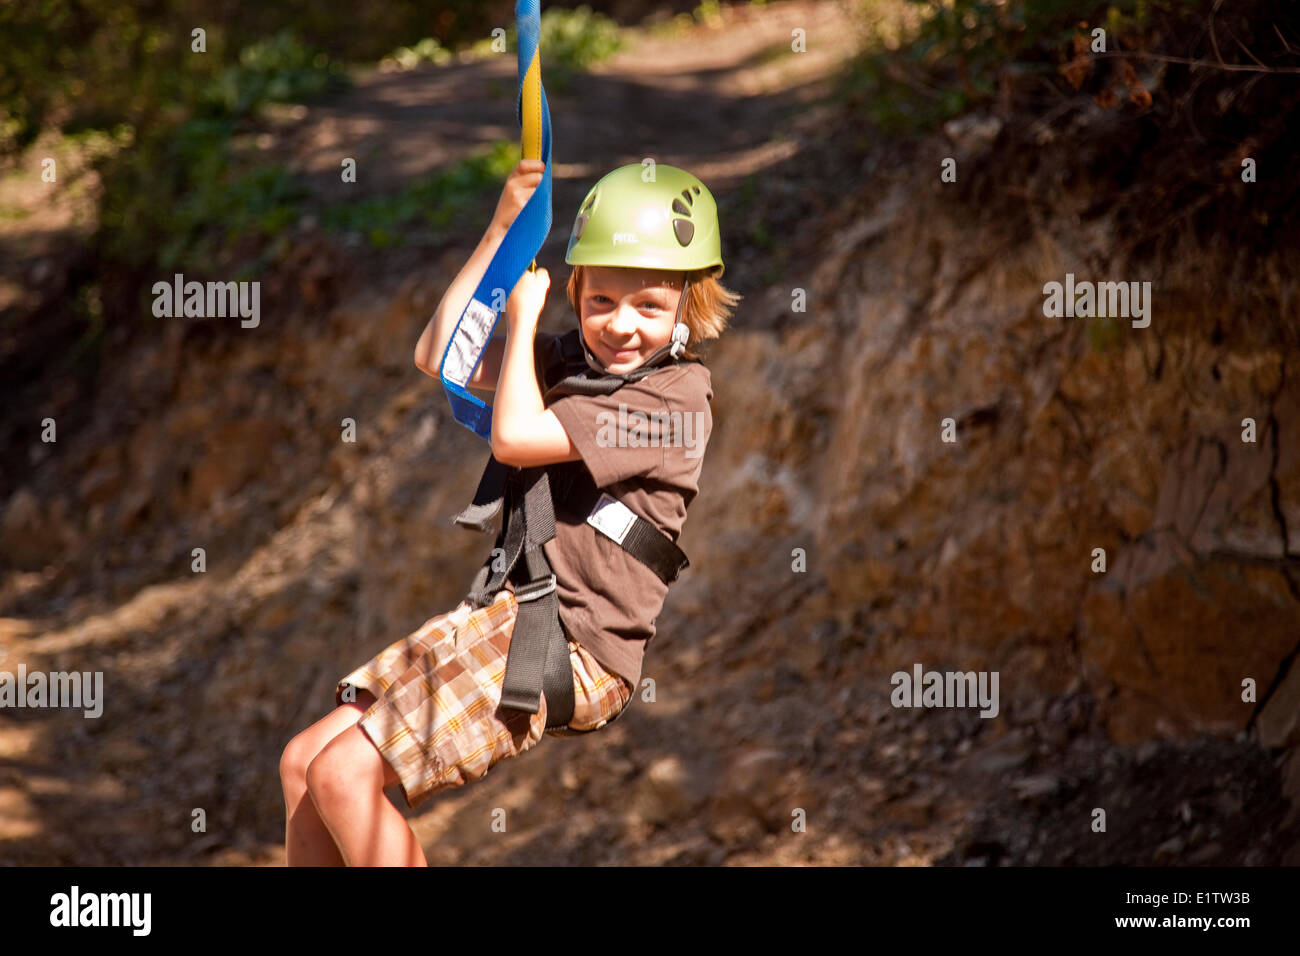 Young boy enjoys zip-line at Oyama Zipline, Okanagan Valley, BC, Canada. - Stock Image